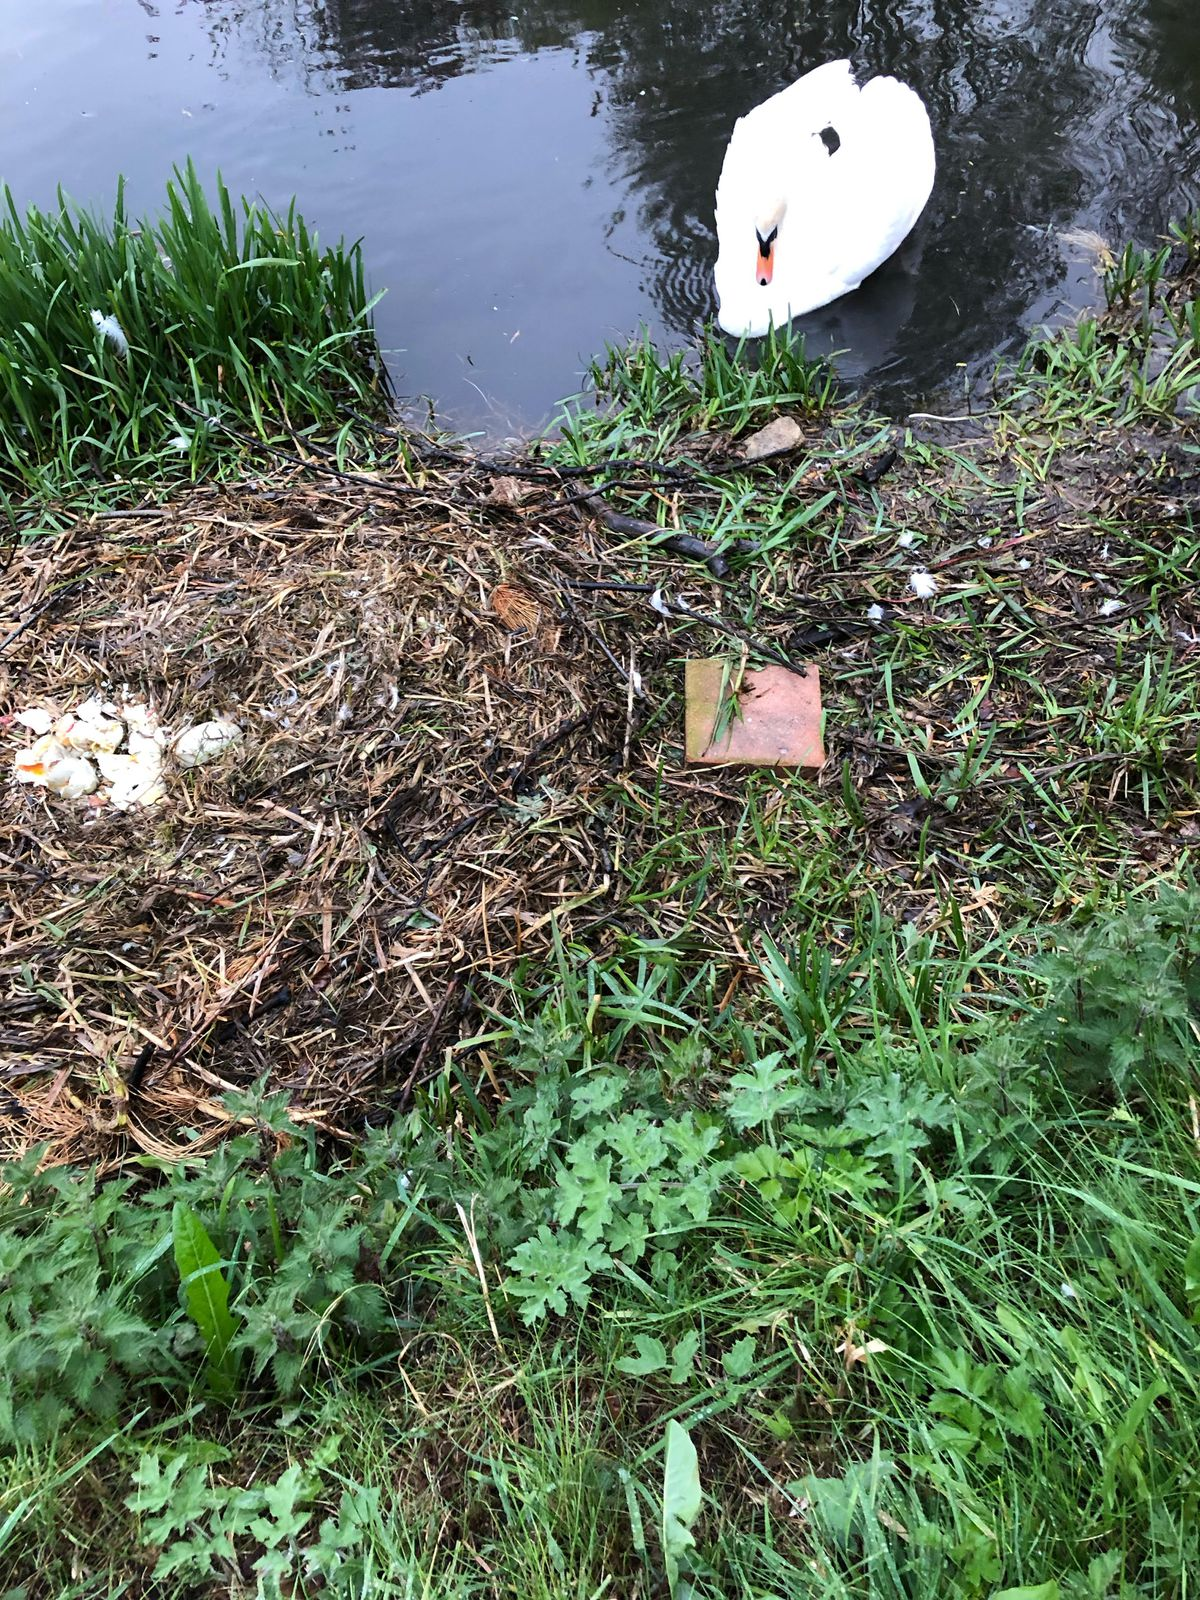 A swan looks on at the destroyed nest